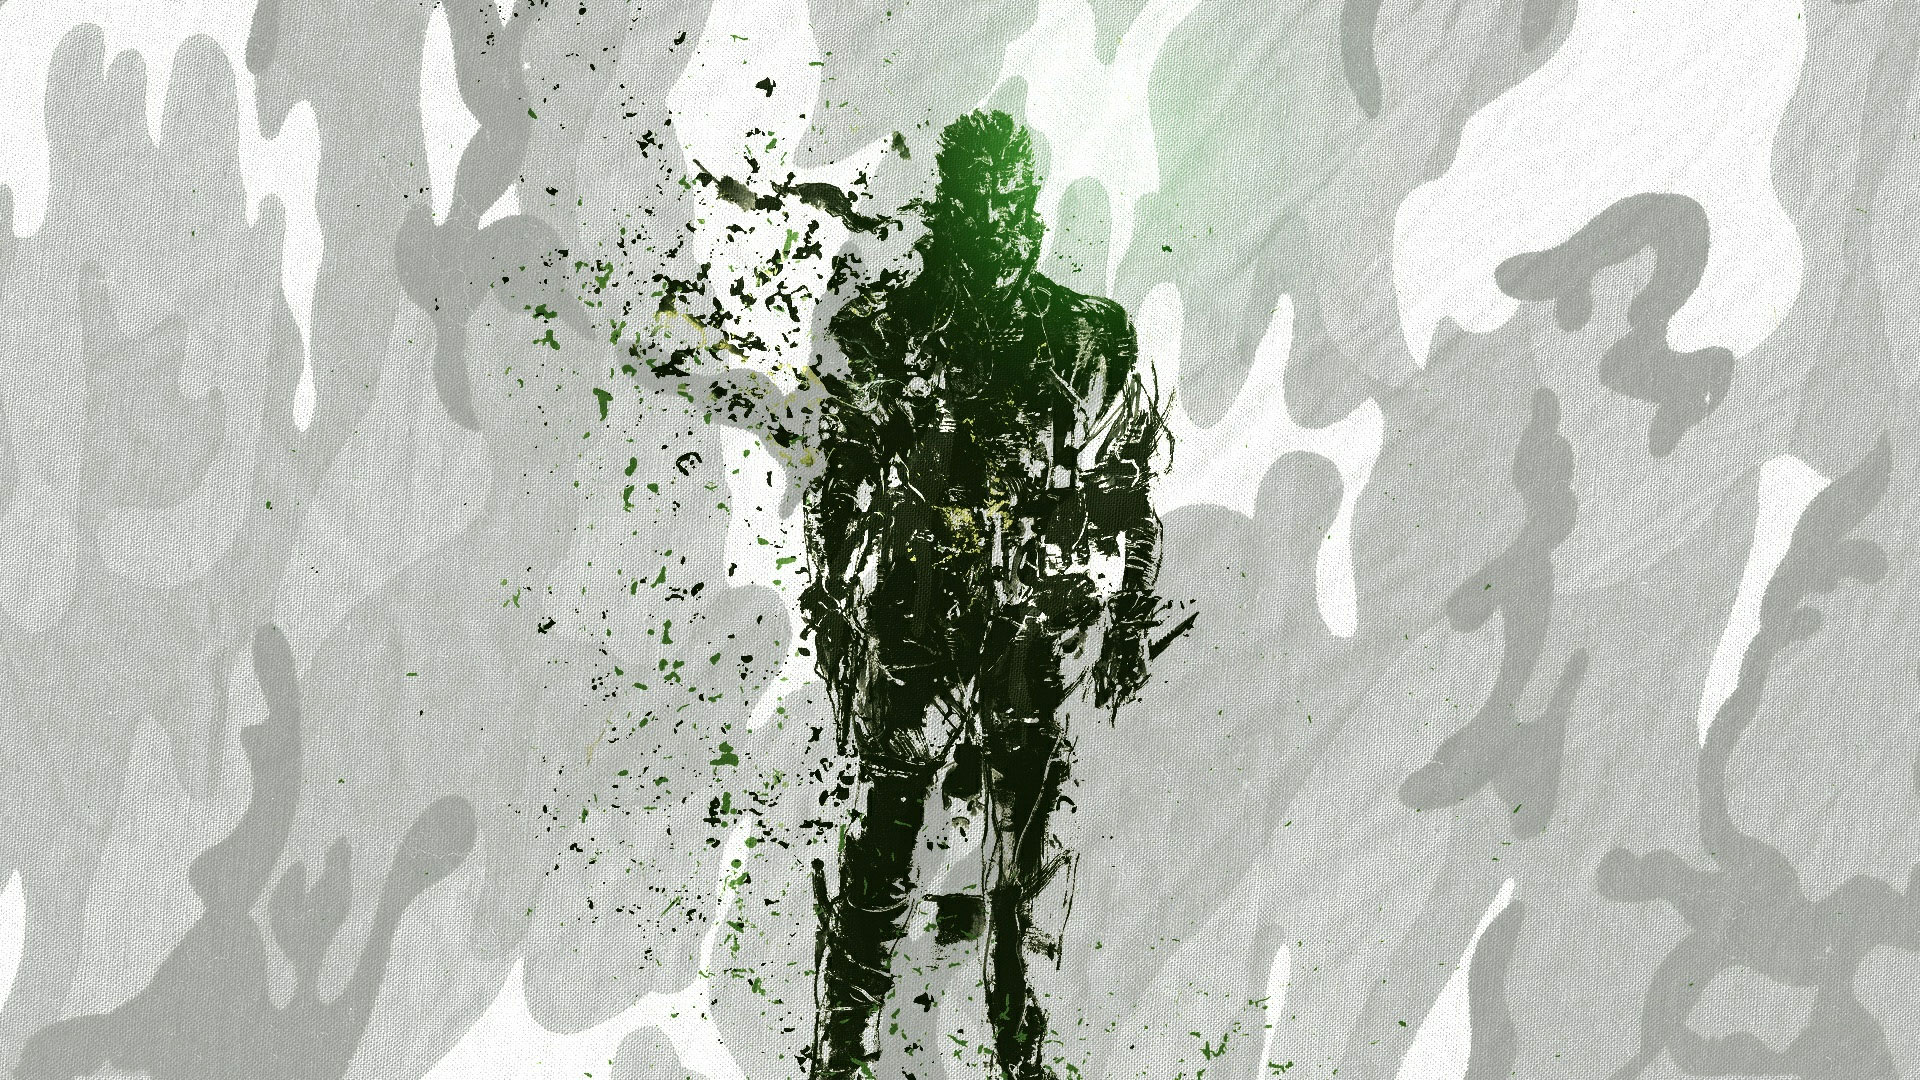 Metal Gear Solid HD Wallpapers and Backgrounds